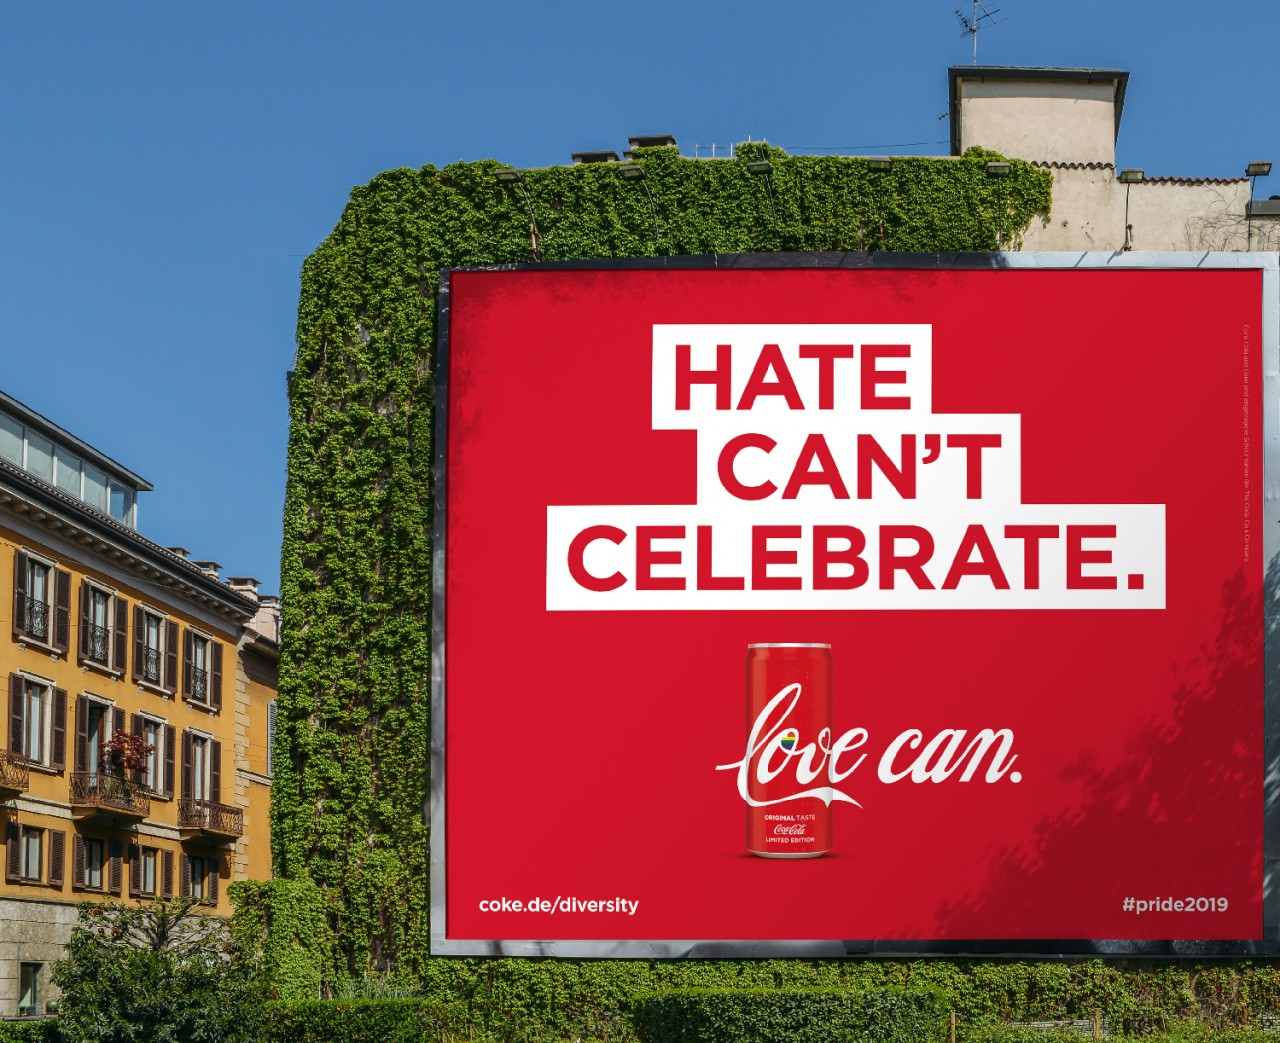 A Coca-Cola Company's banner displayed in a city displaying how hate cannot celebrate, but love can to stimulate diversity and inclusion